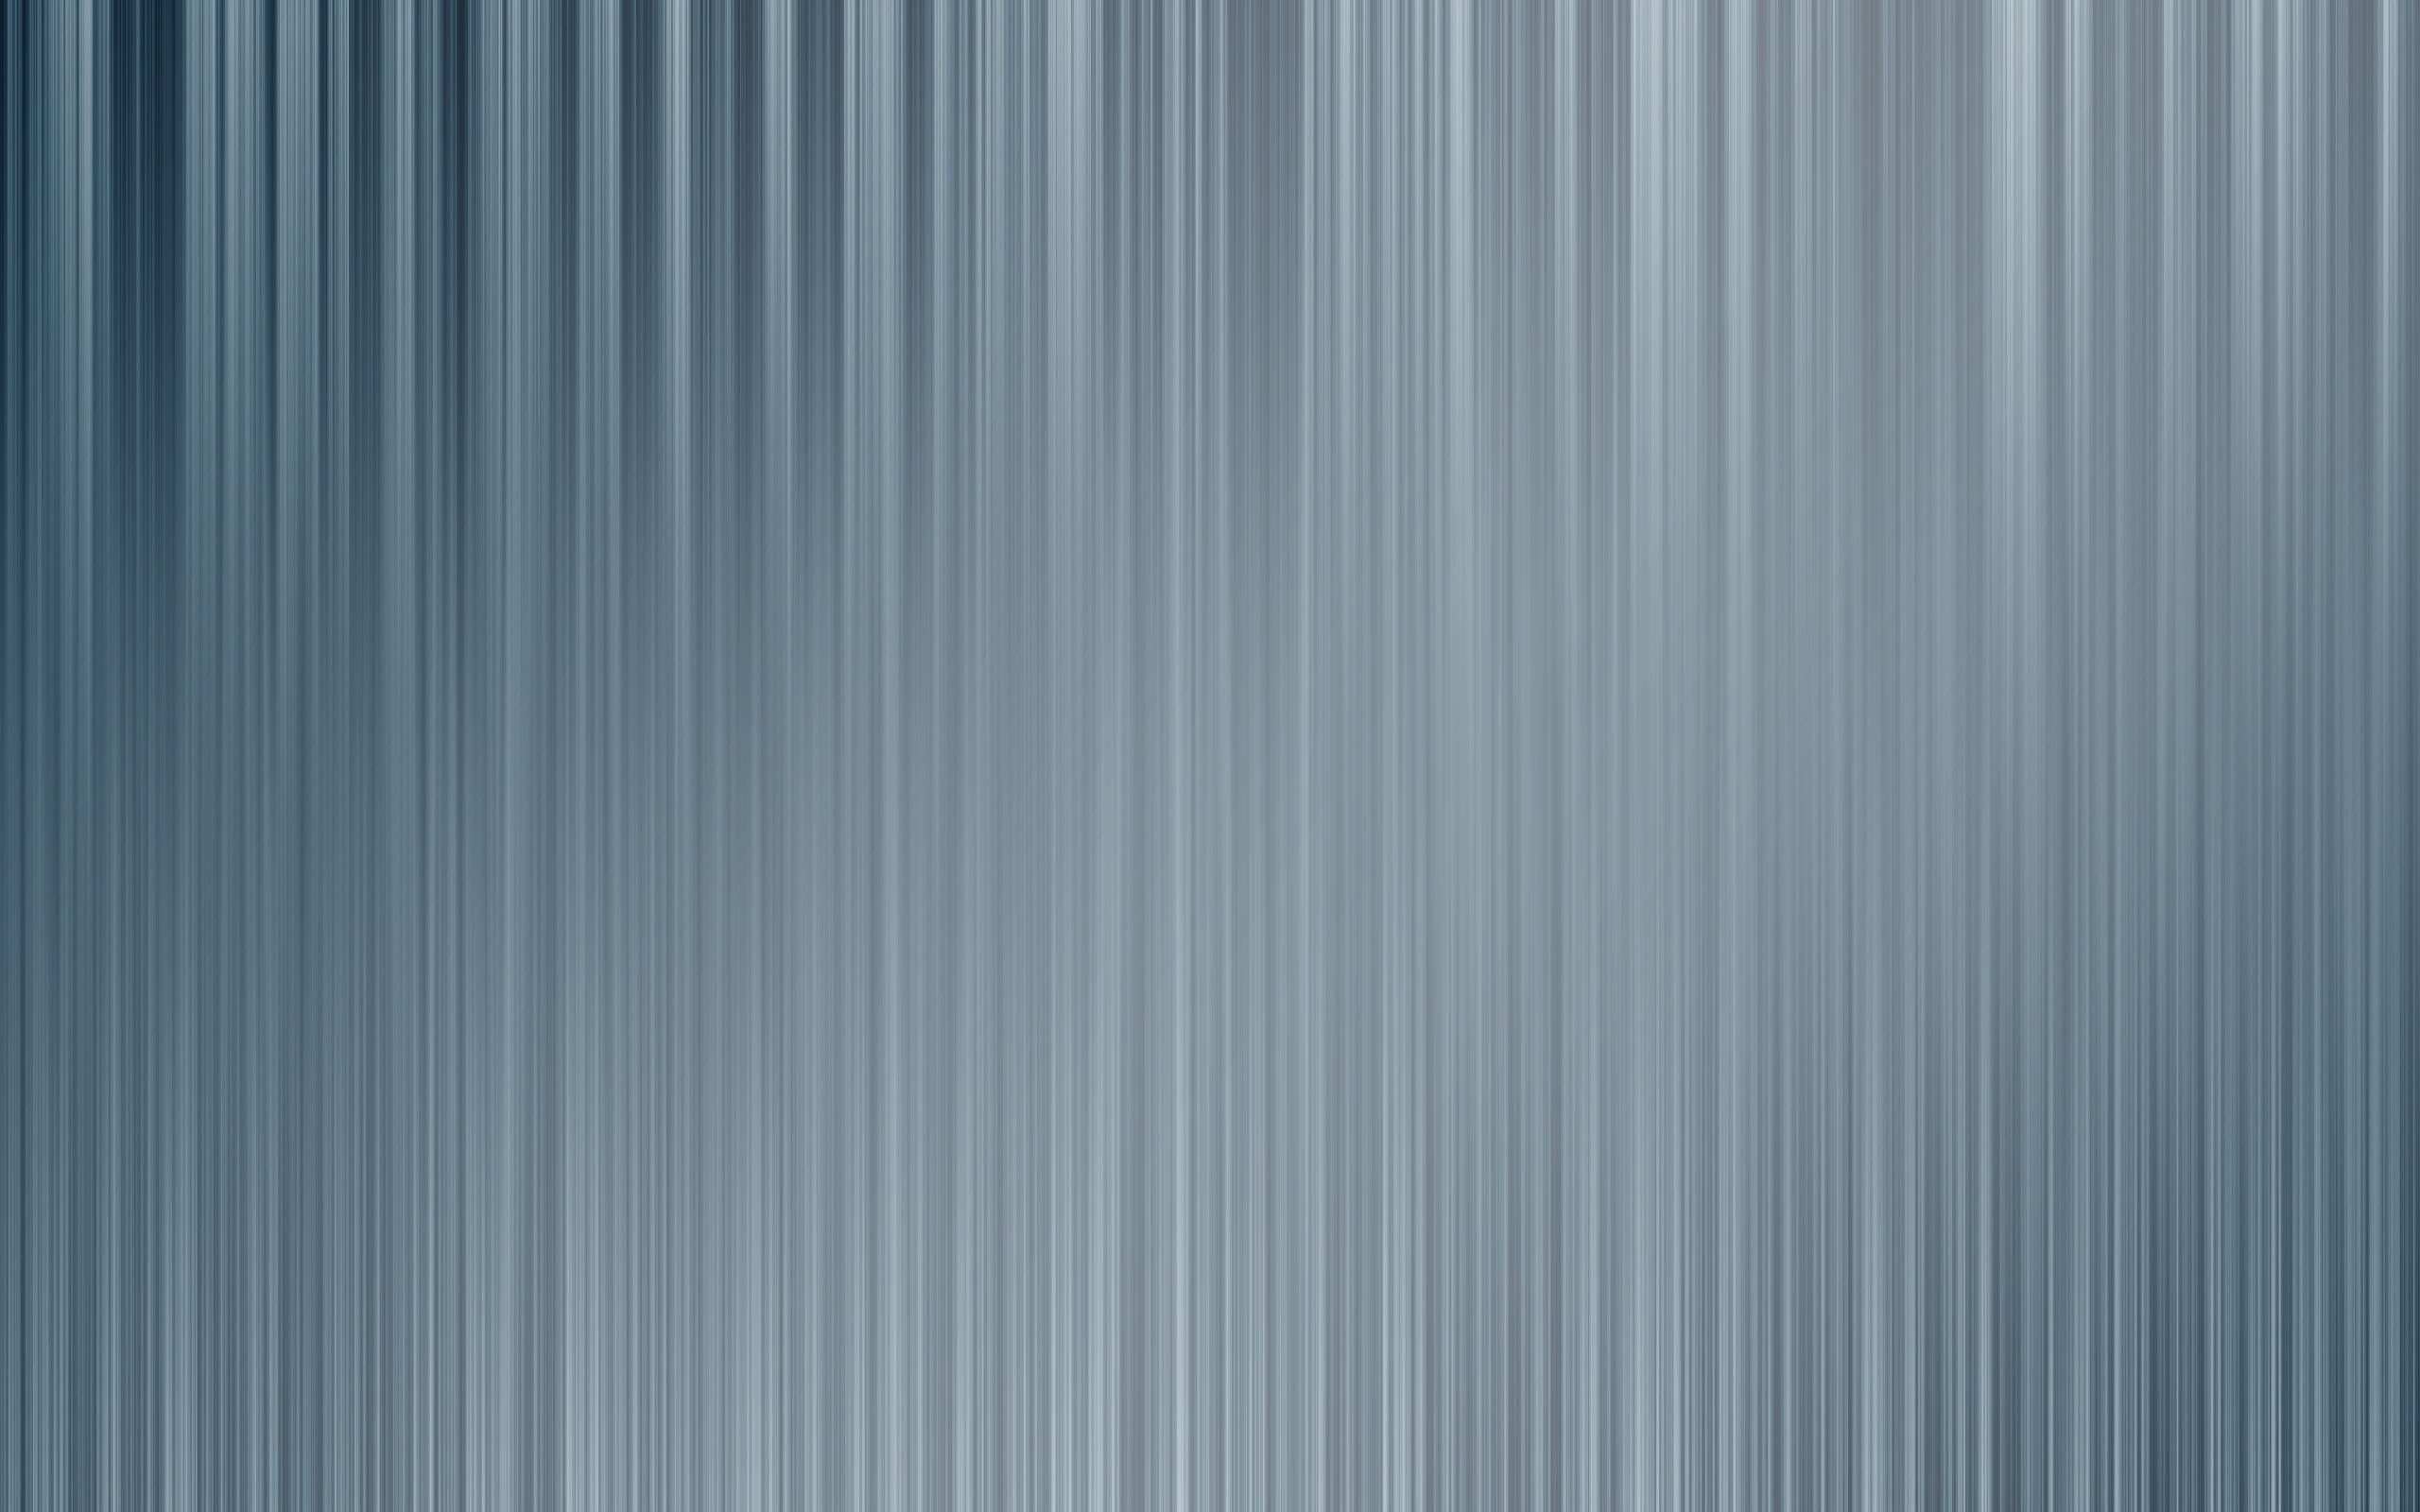 pin grey lines wallpaper - photo #22